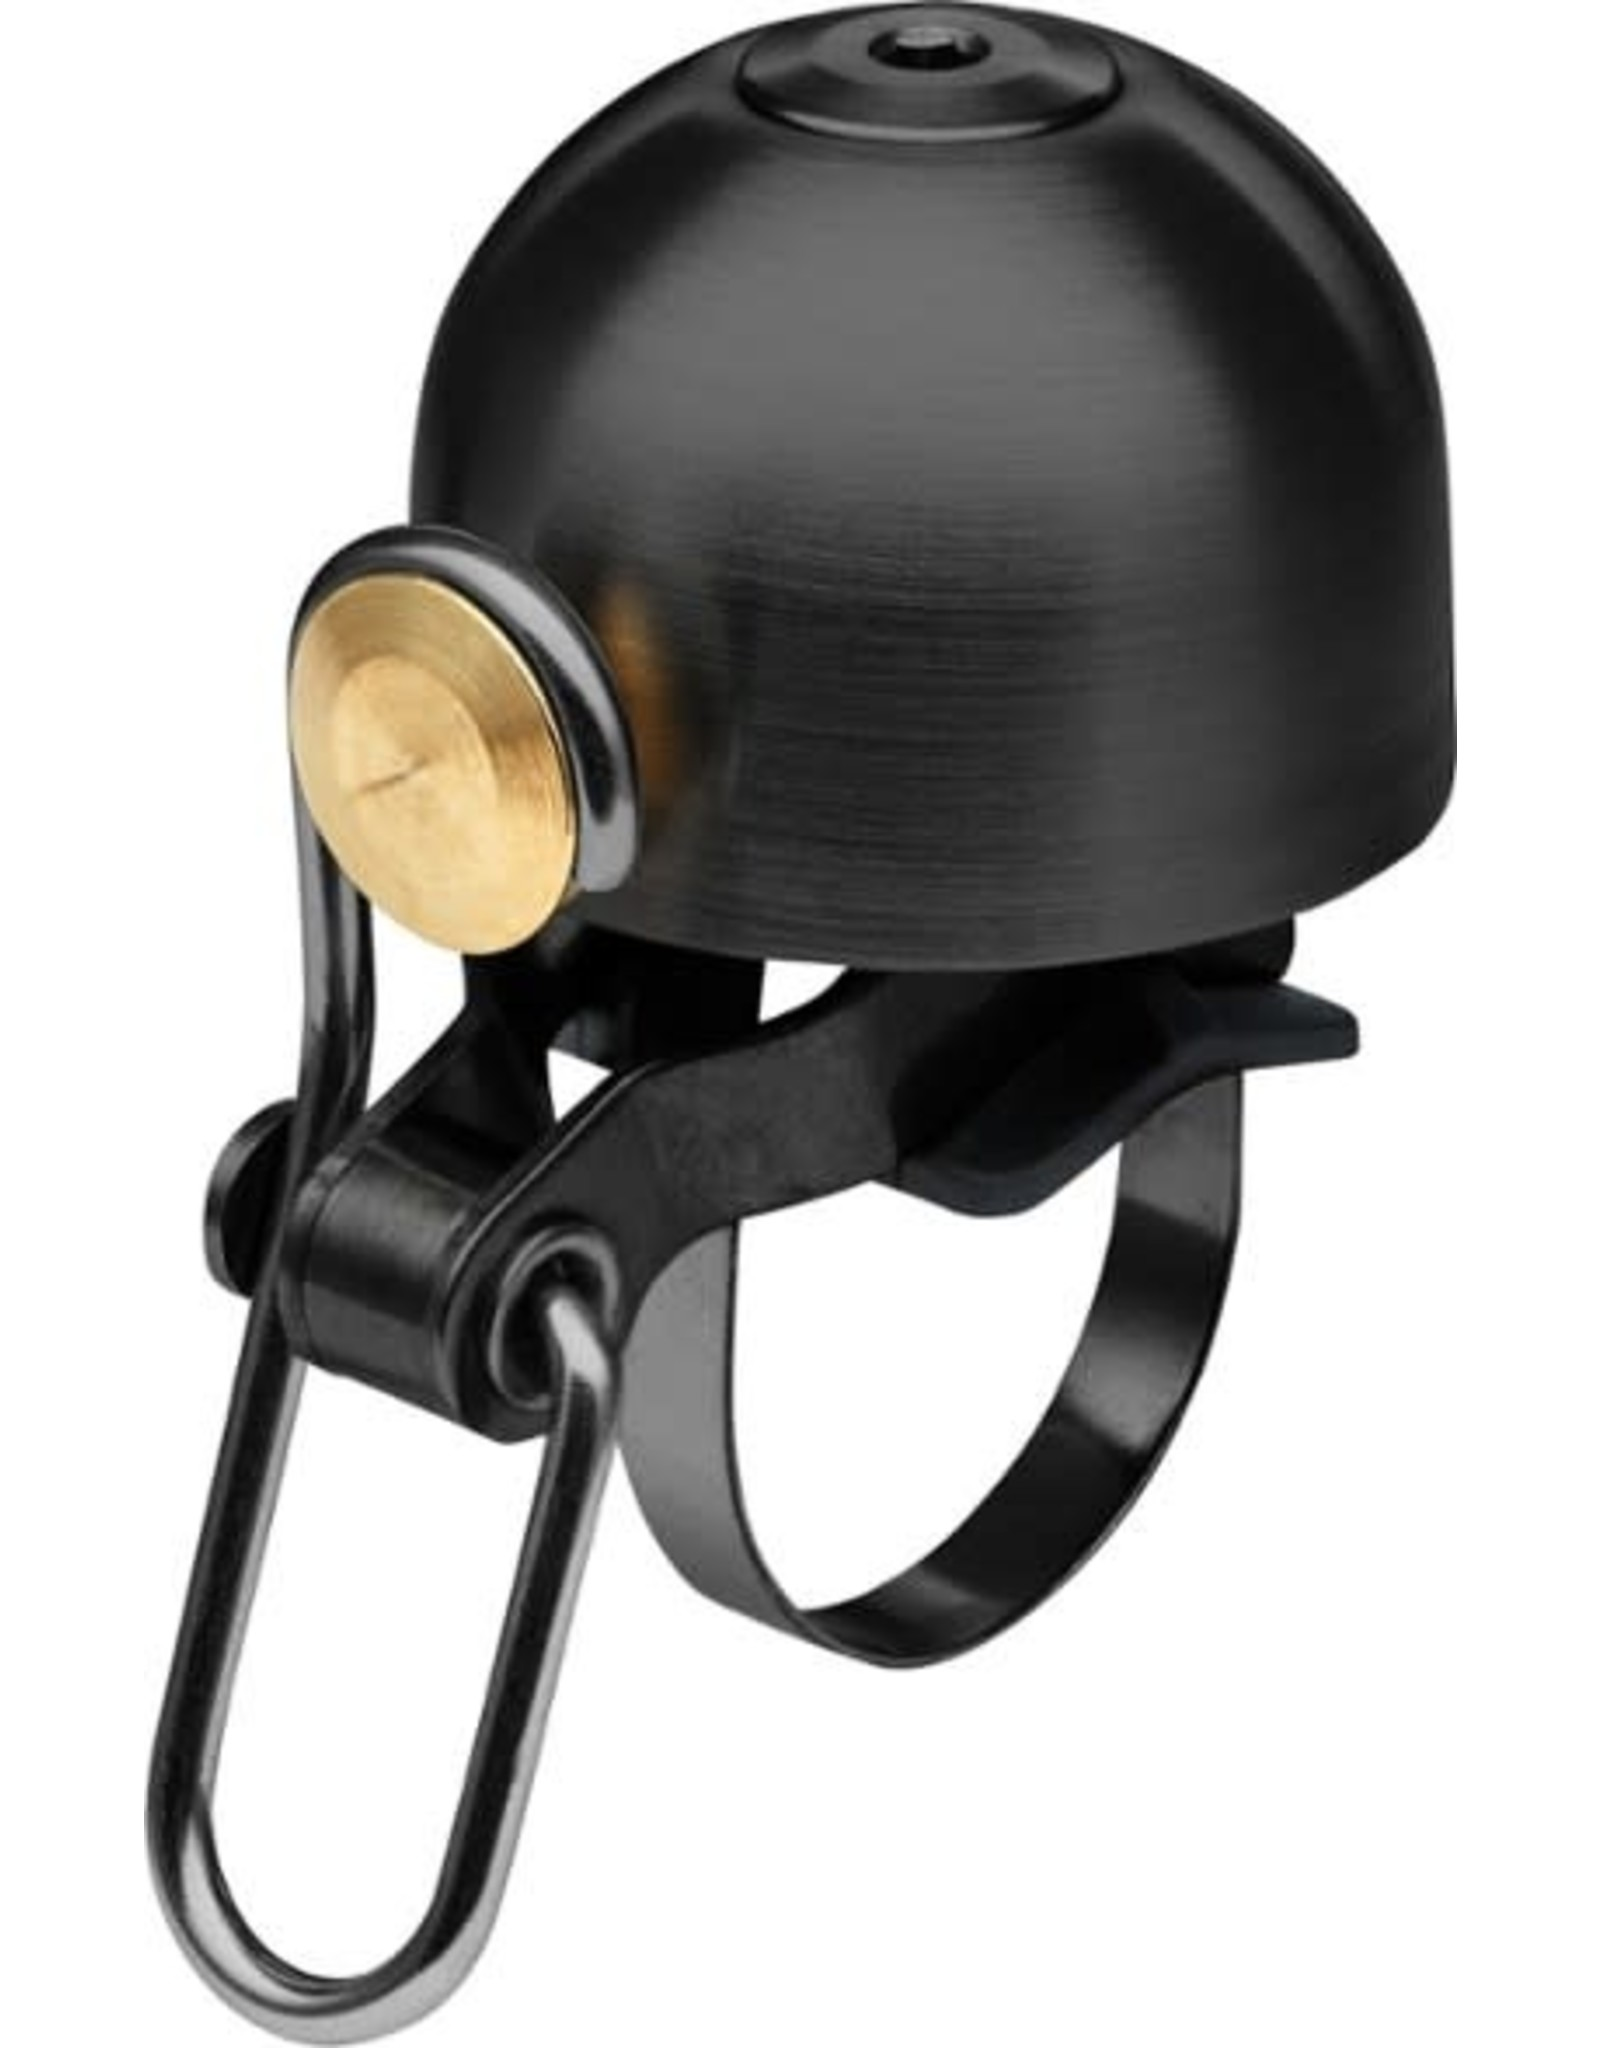 Spurcycle Bell - Black